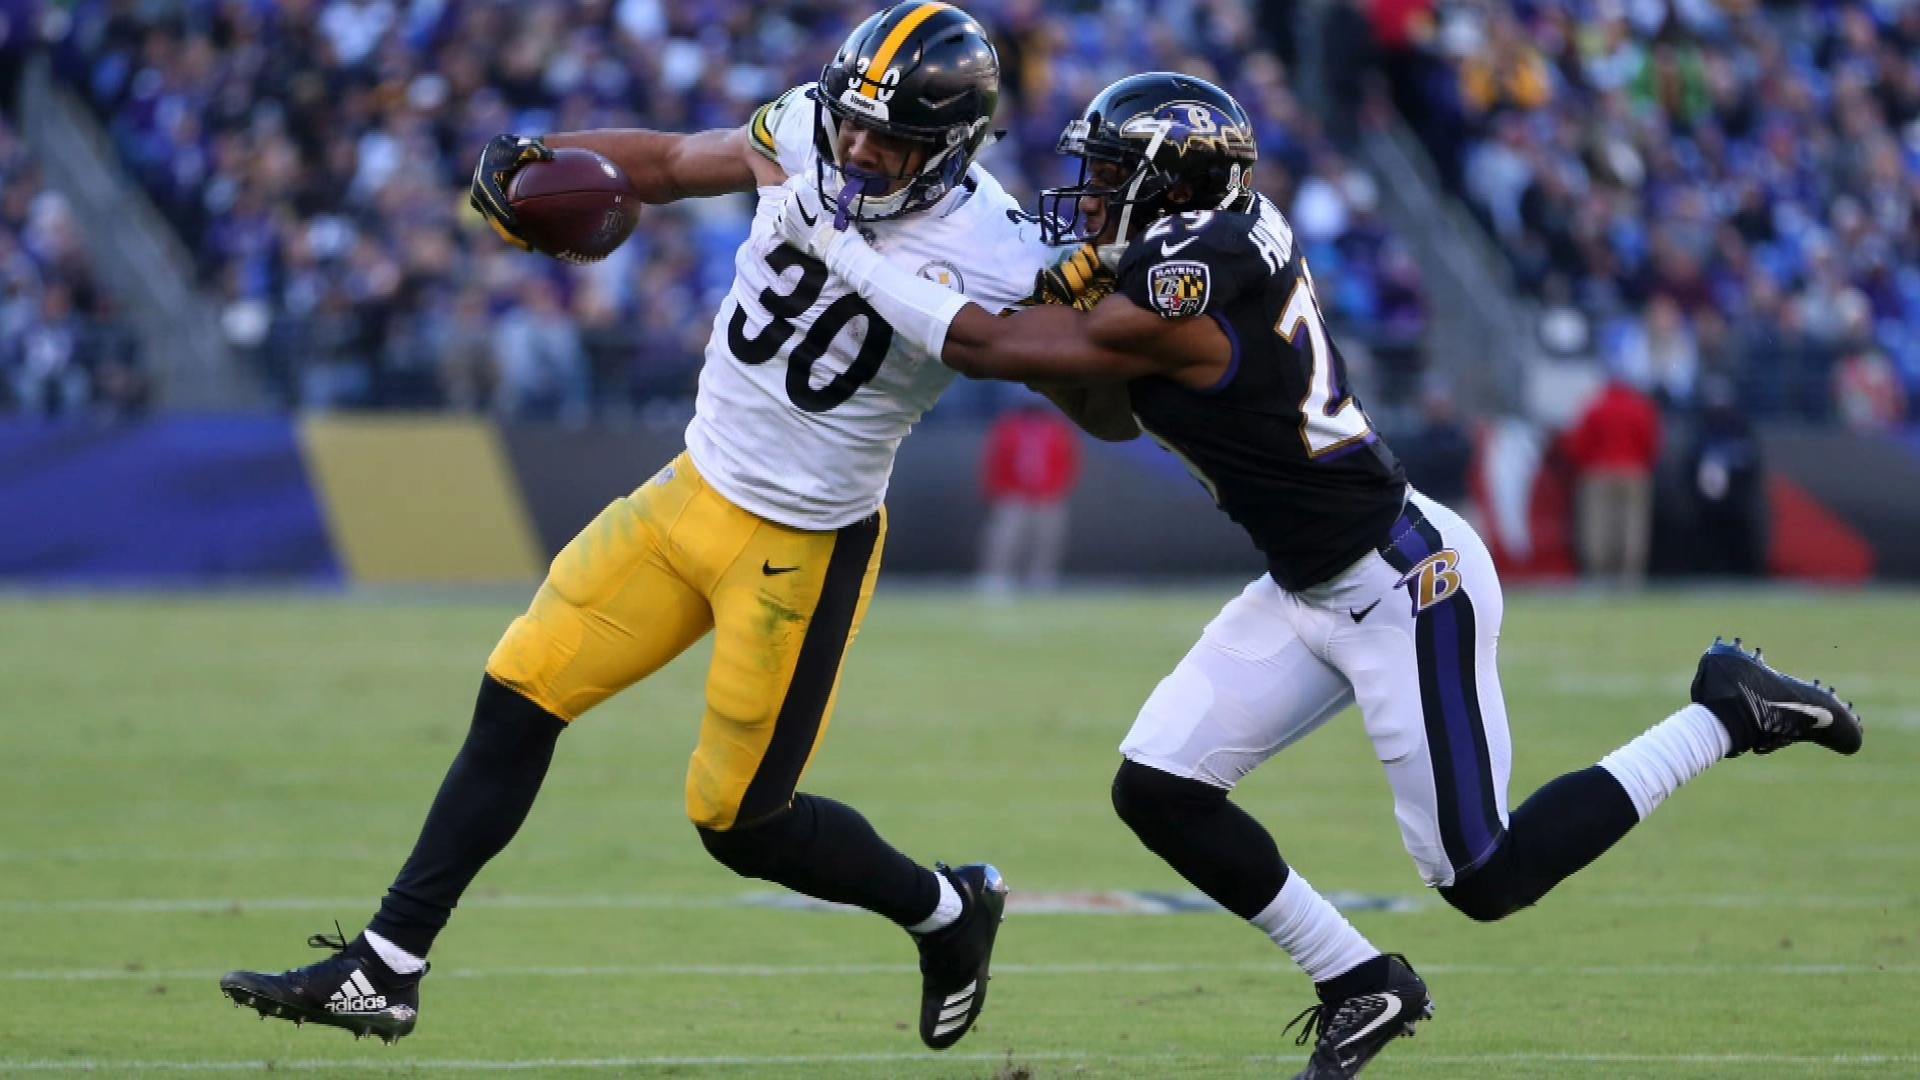 cc3834d2c Pittsburgh Steelers improving but Le Veon Bell s return could change that